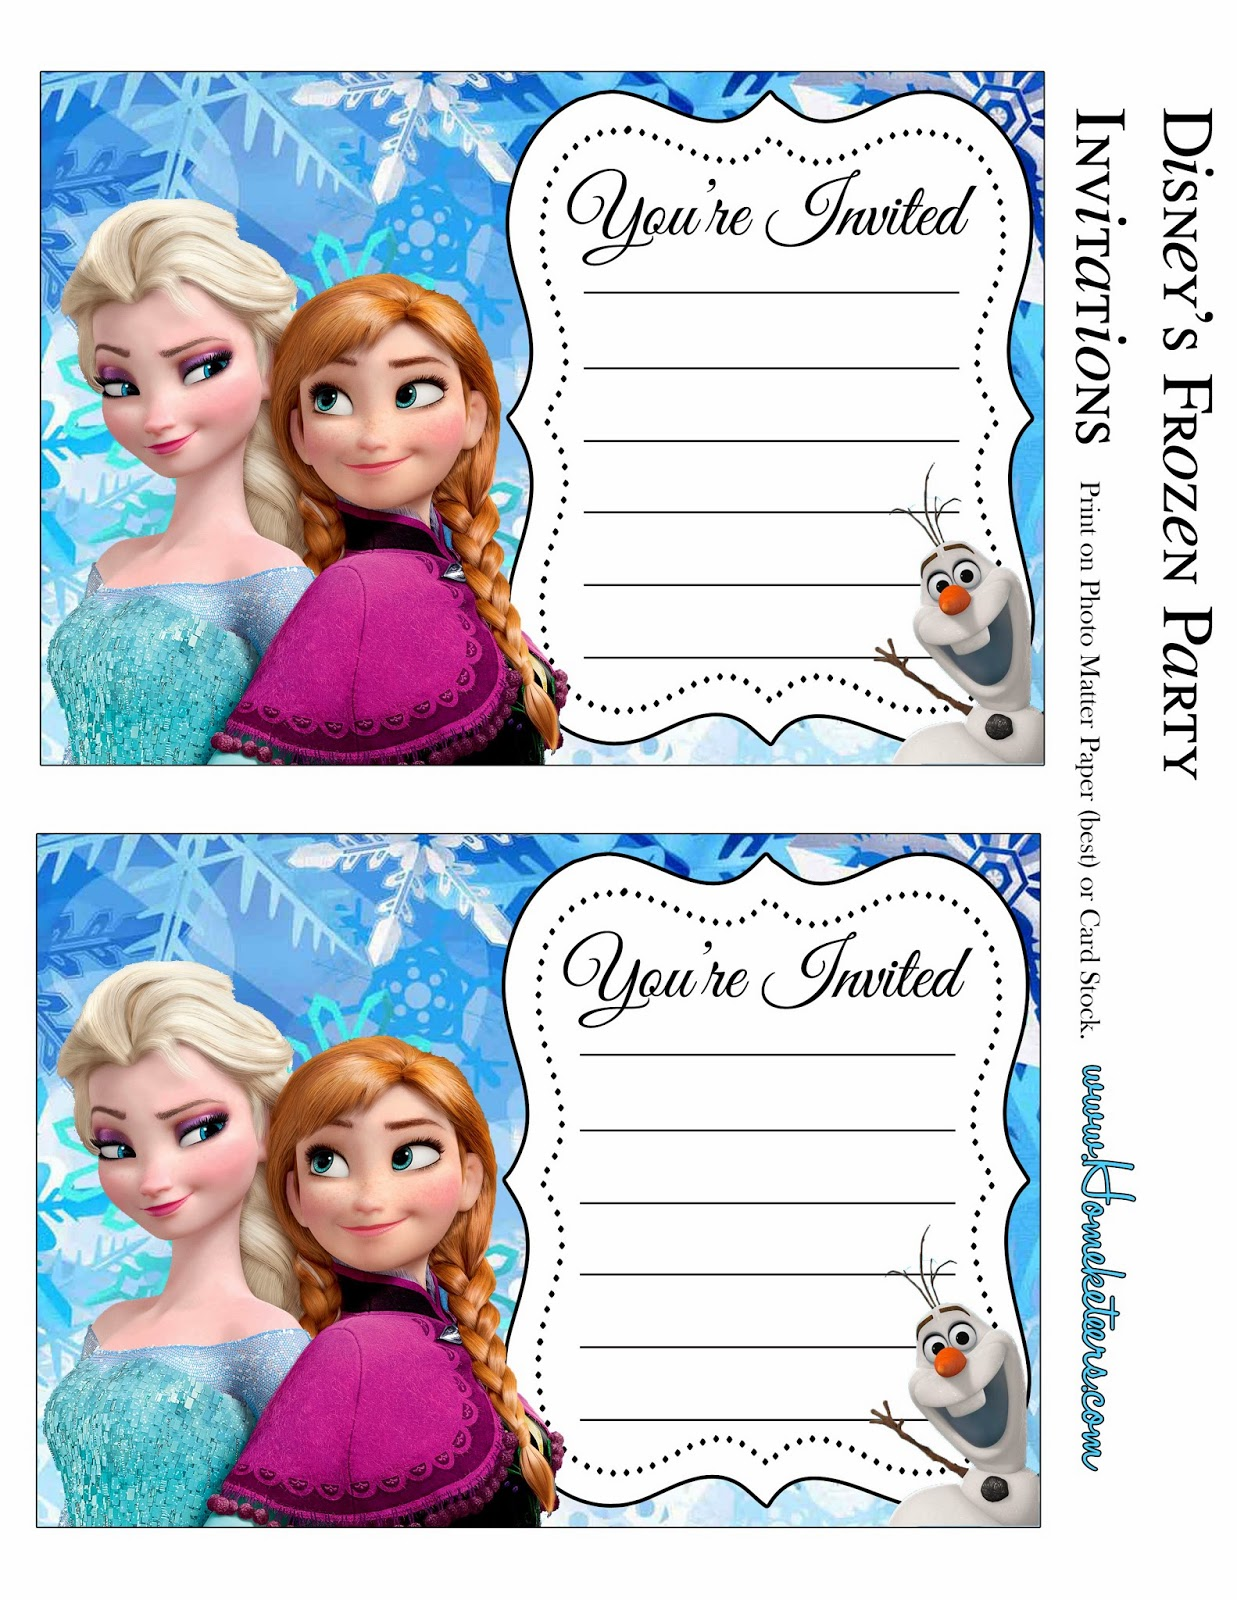 Frozen Party Free Printable Invitations – Party Invitations Frozen